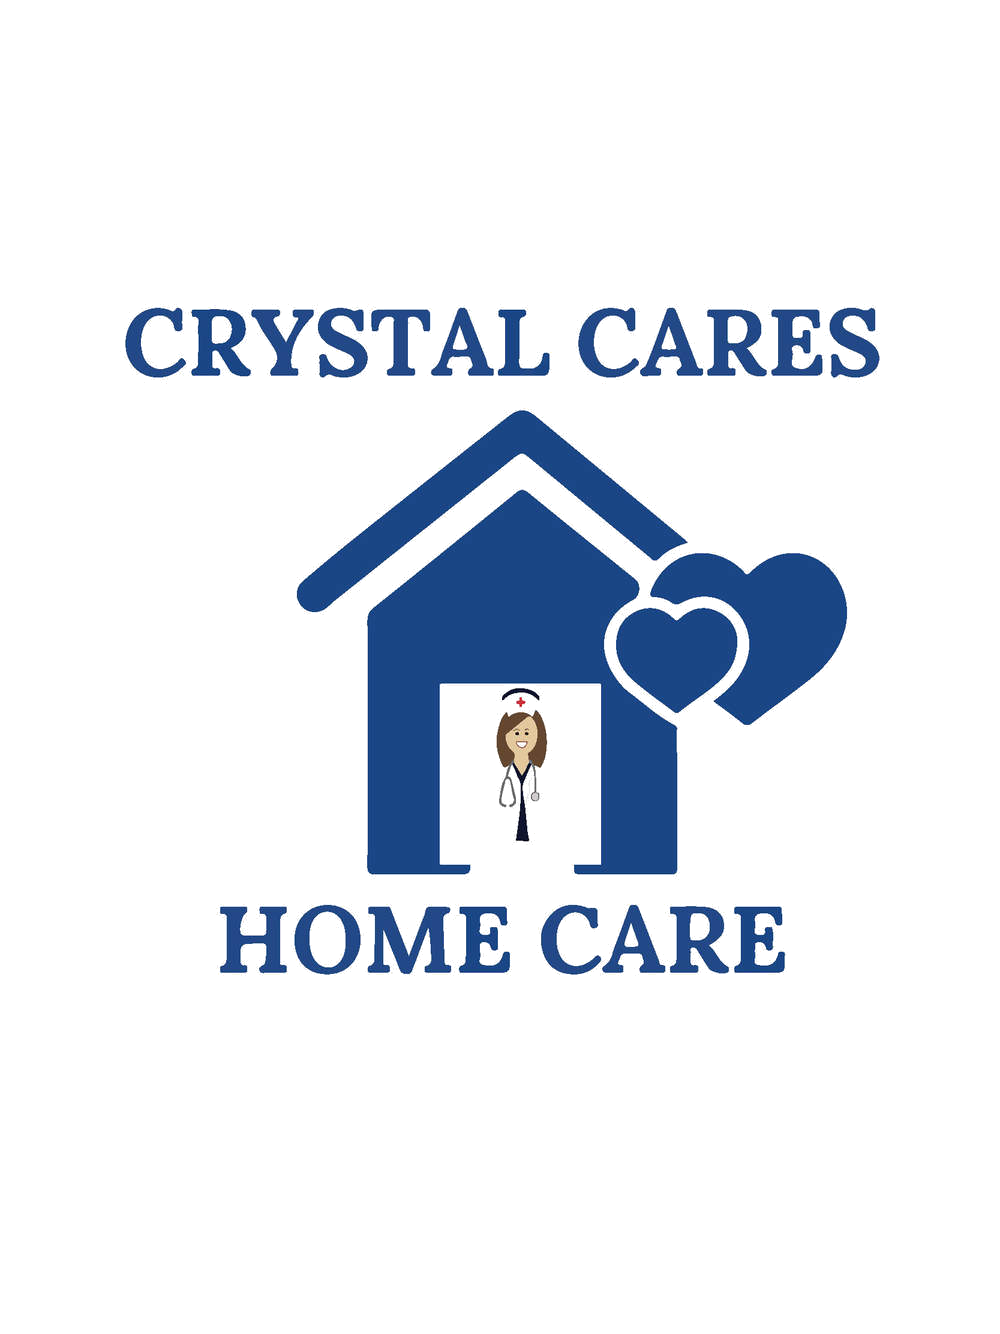 Crystal Cares Home Care